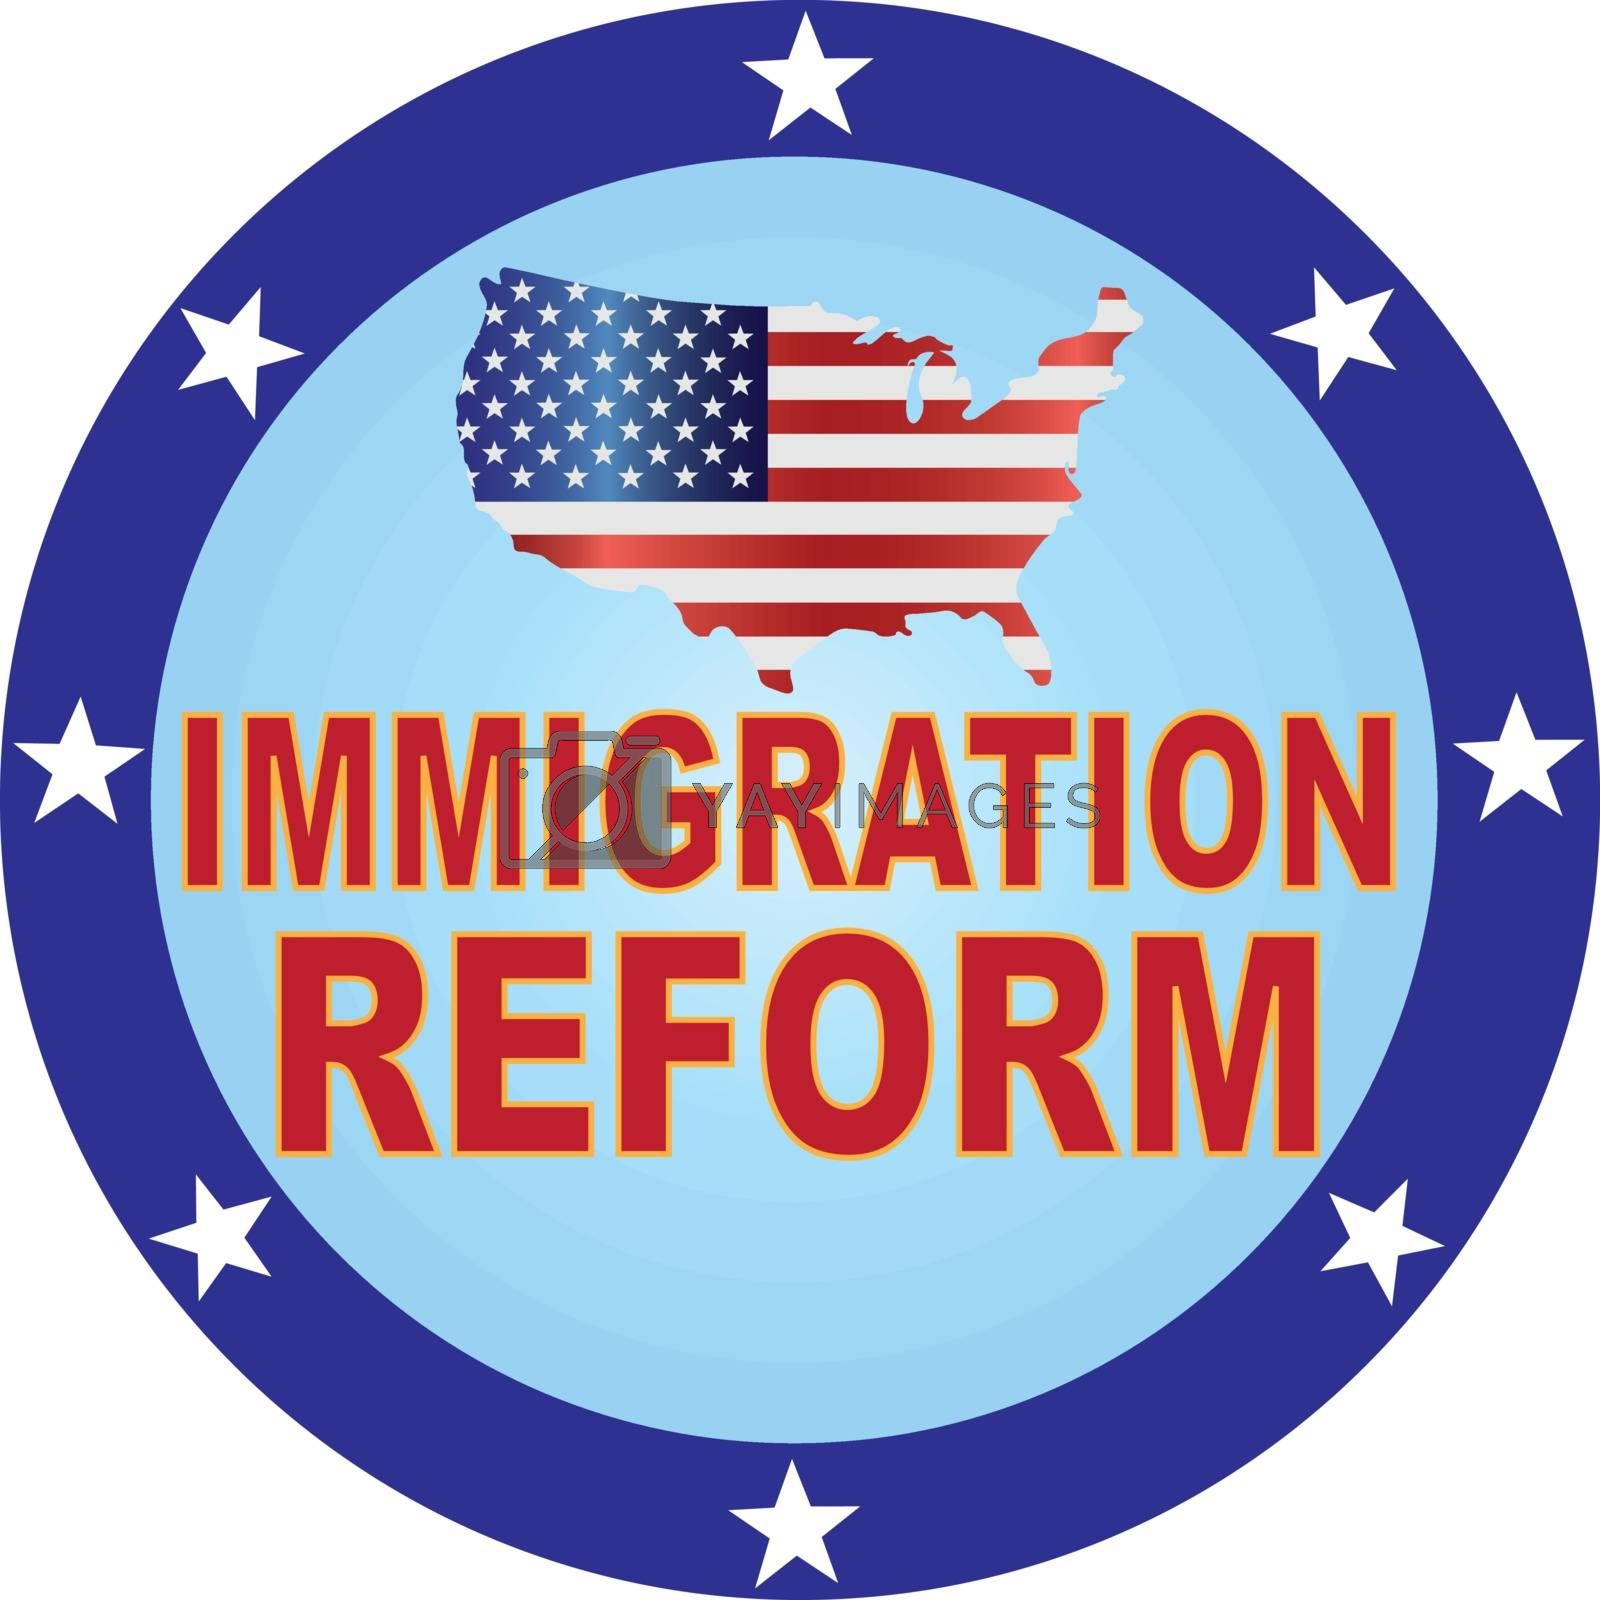 Immigration Reform with USA Flag in Map Silhouette Button Illustration